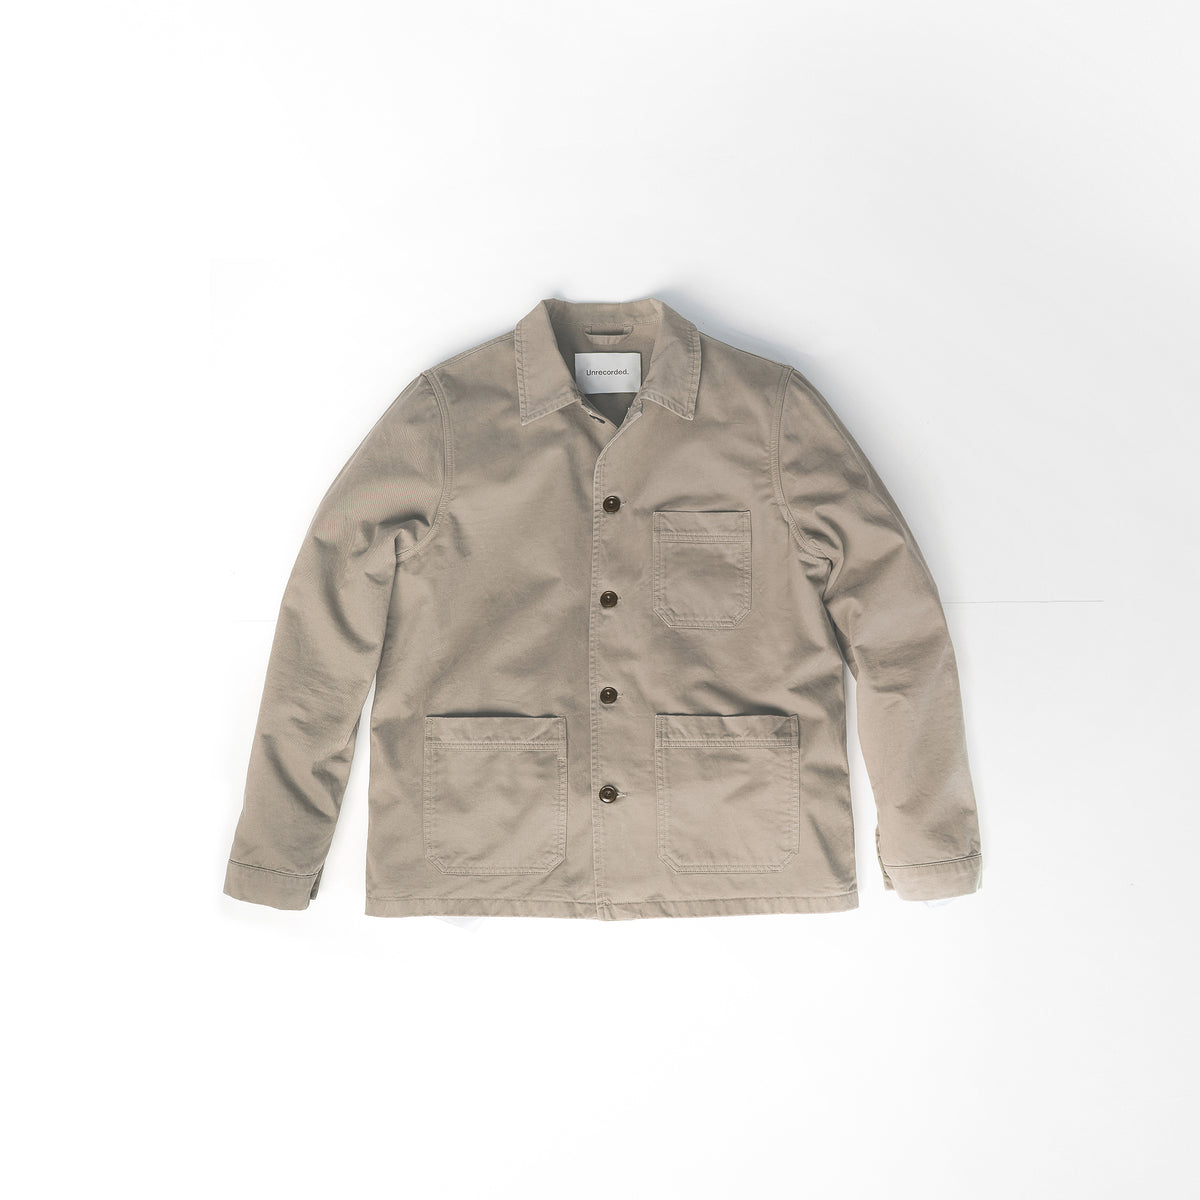 Worker Jacket in Khaki made from organic cotton - Alternate